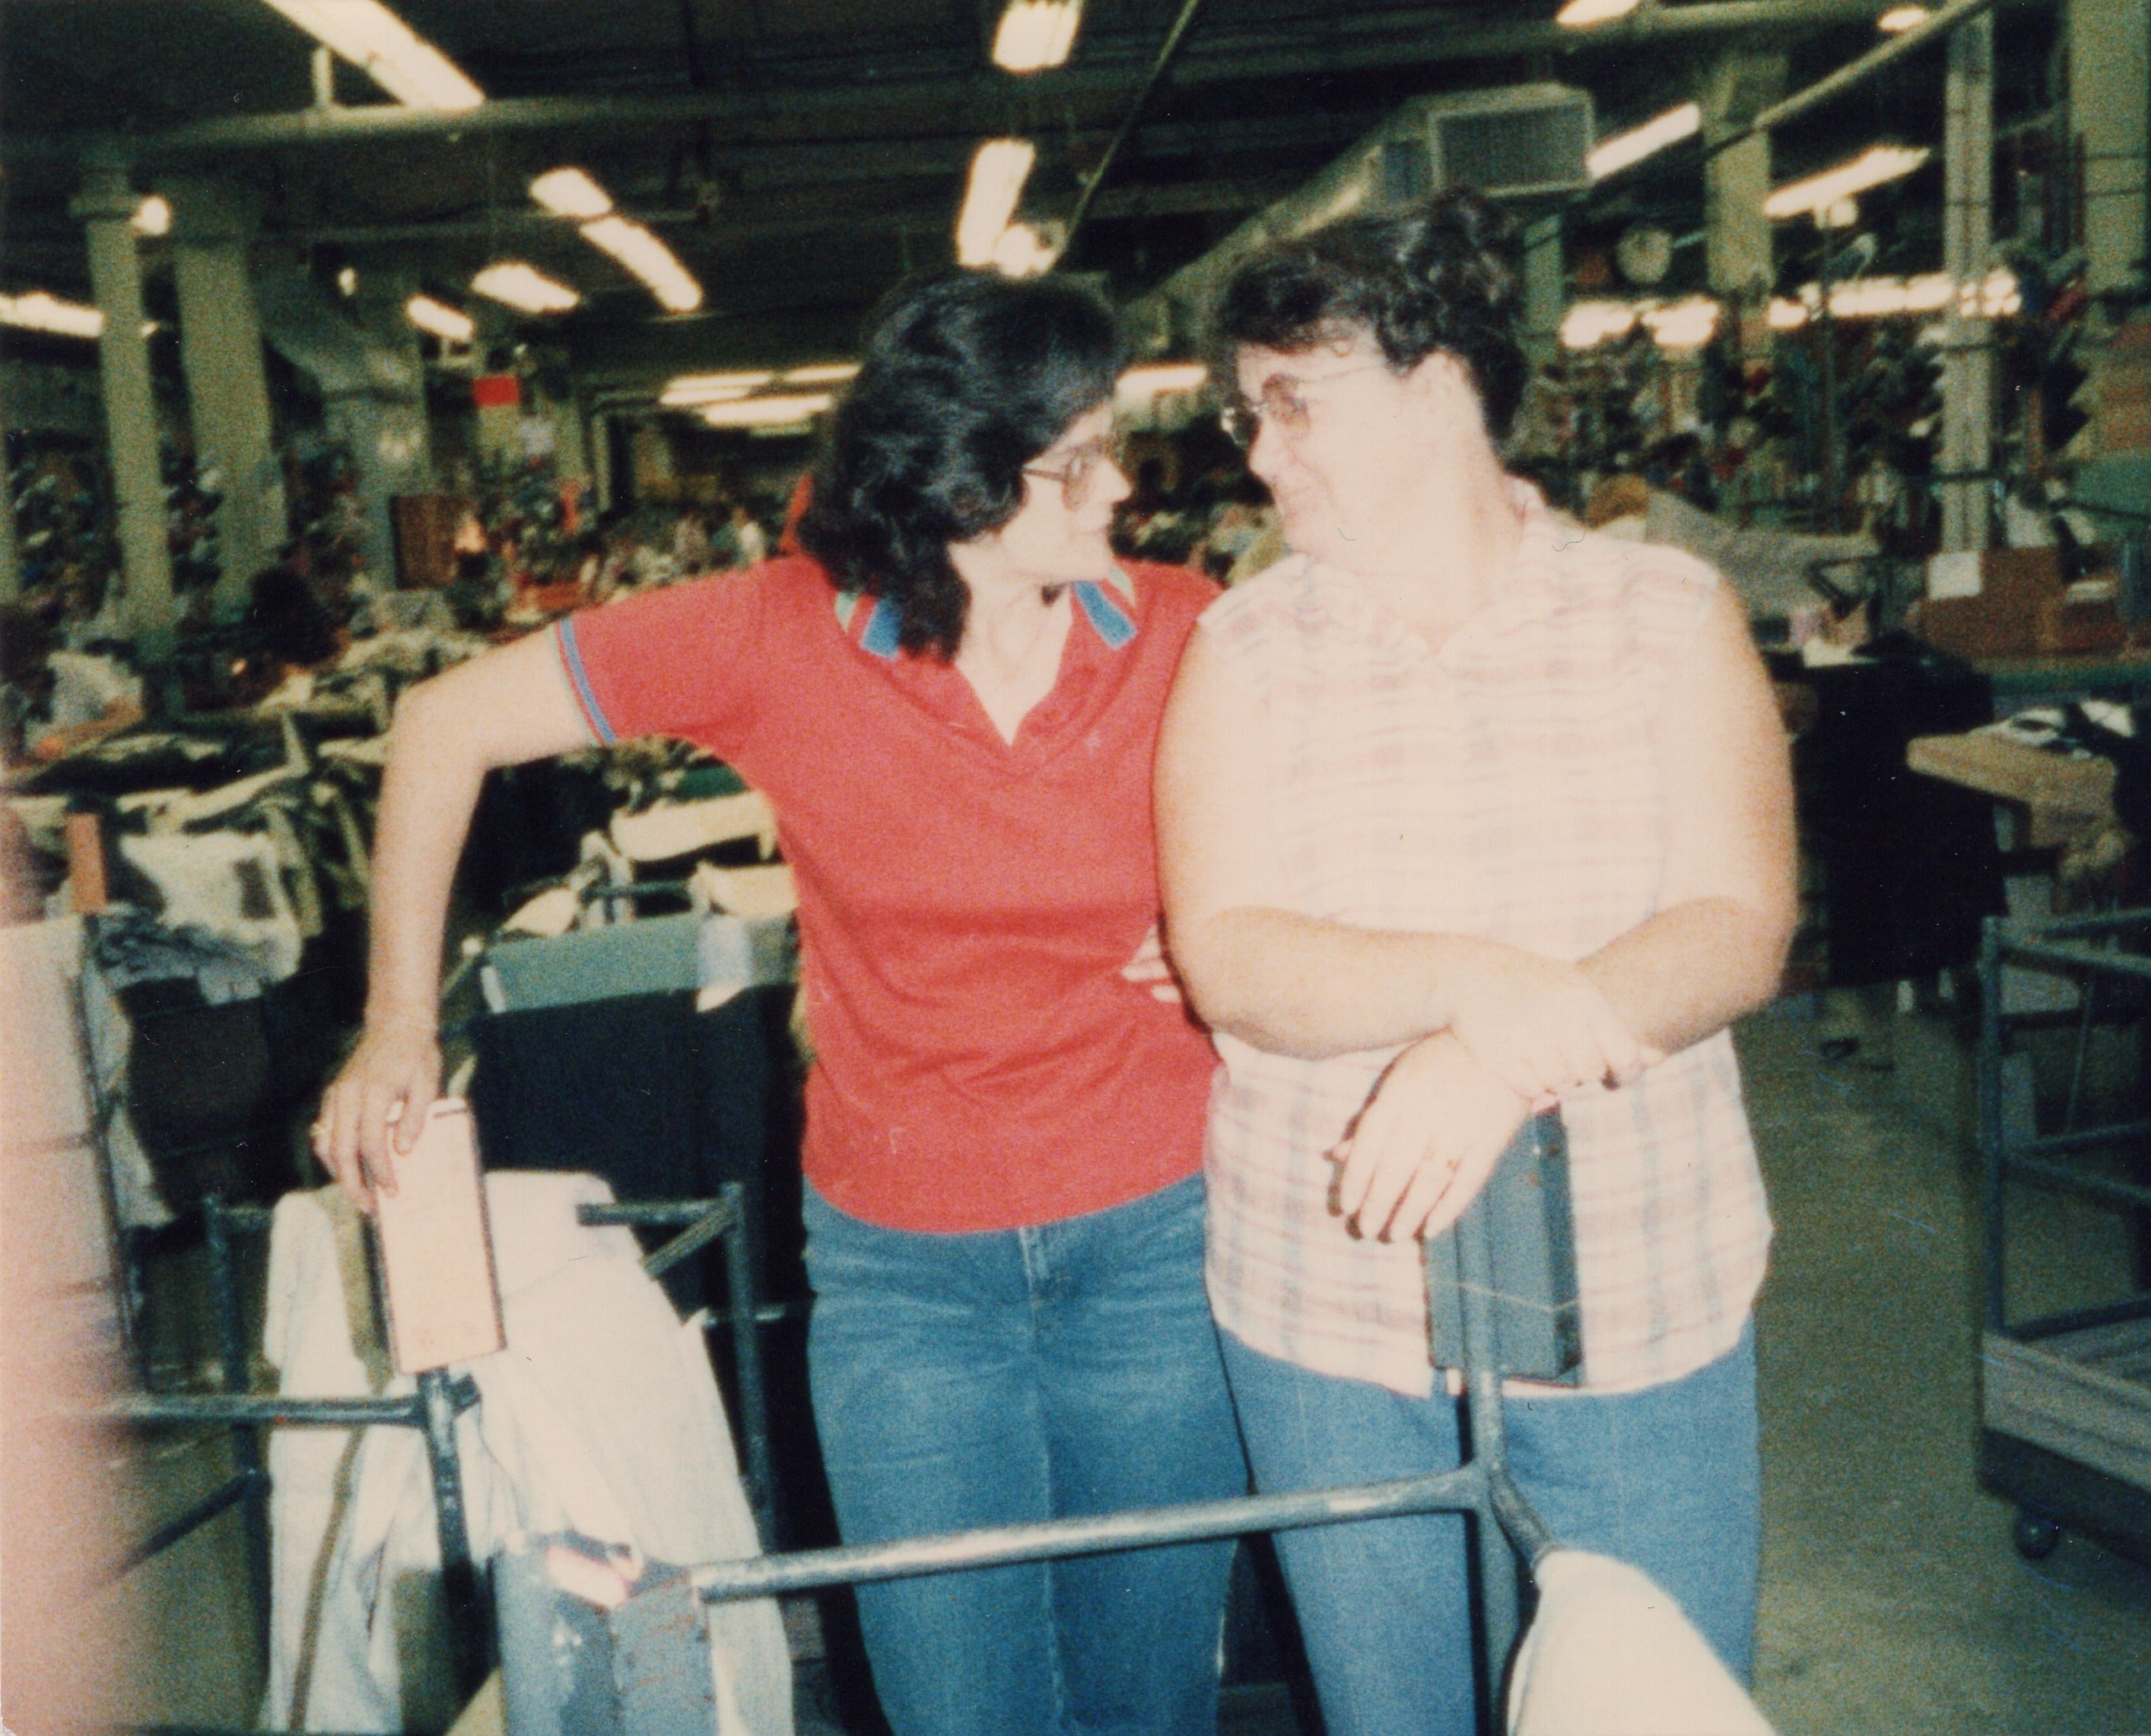 Corbin Ltd. Machine Operators Brenda Seary and Phyllis Nance on break, Huntington, WV